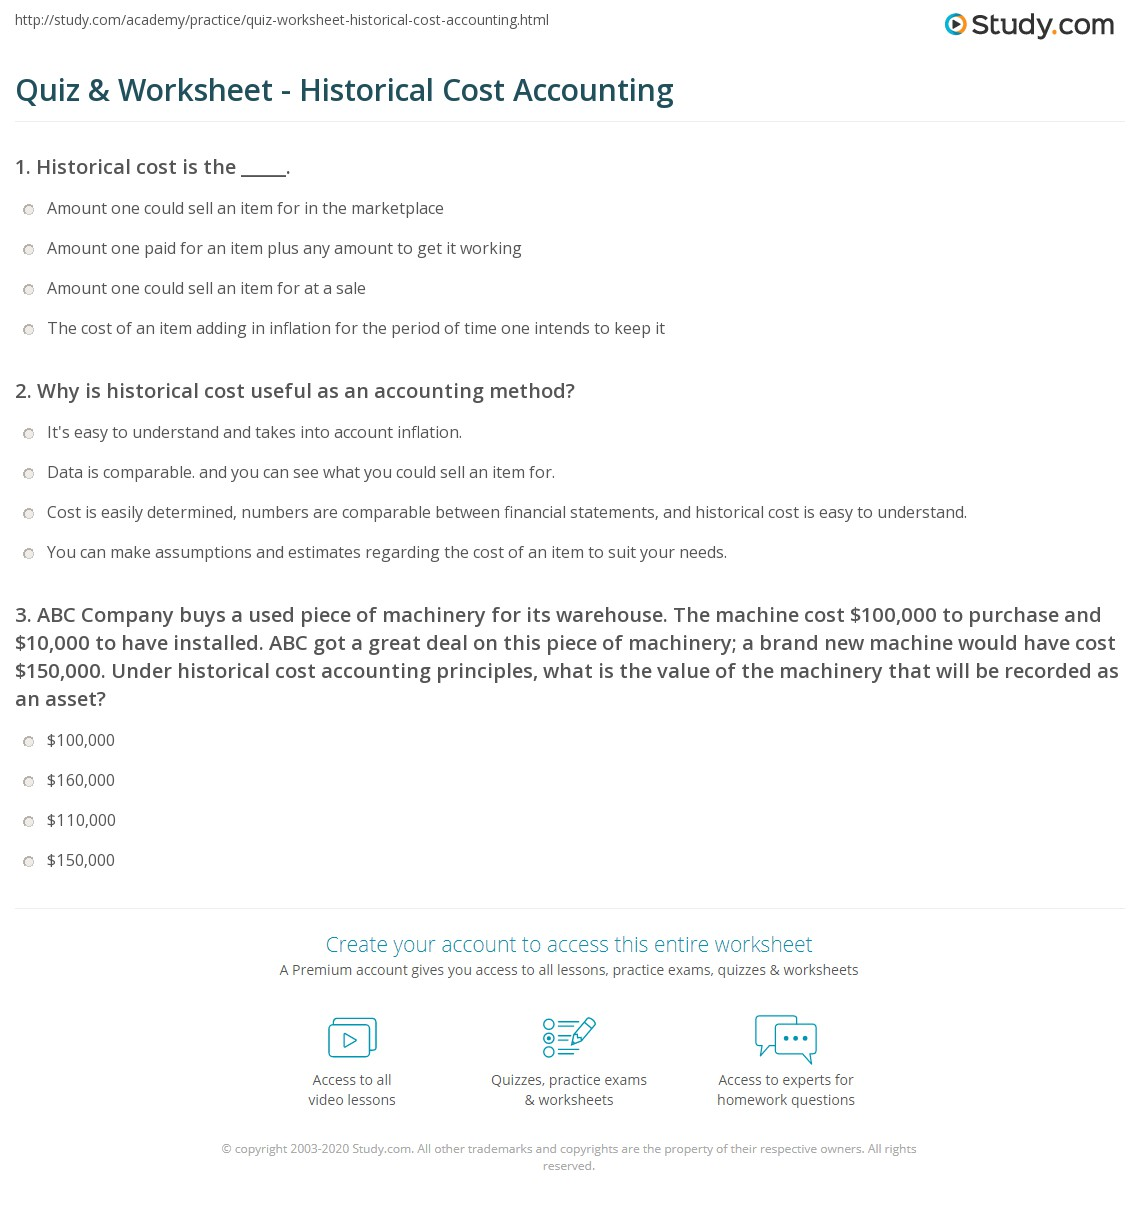 Worksheets Worksheet In Accounting Definition worksheet in accounting definition rupsucks printables worksheets quiz historical cost study com print method advantages